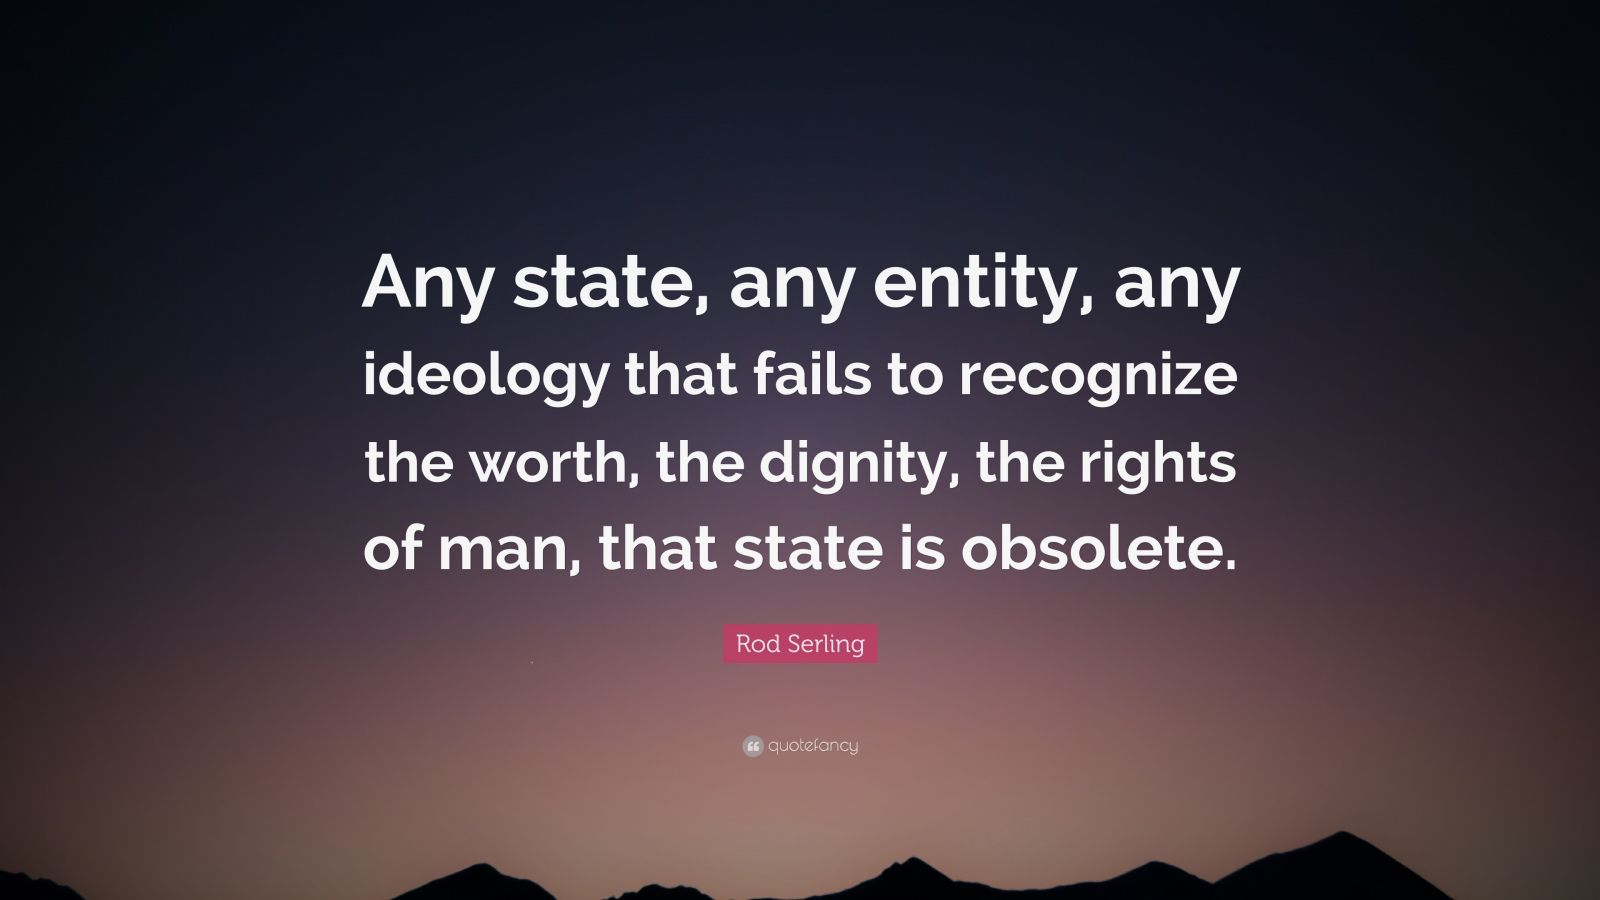 """Rod Serling Quote: """"Any state, any entity, any ideology that fails to recognize the worth, the dignity, the rights of man, that state is obsolete."""""""